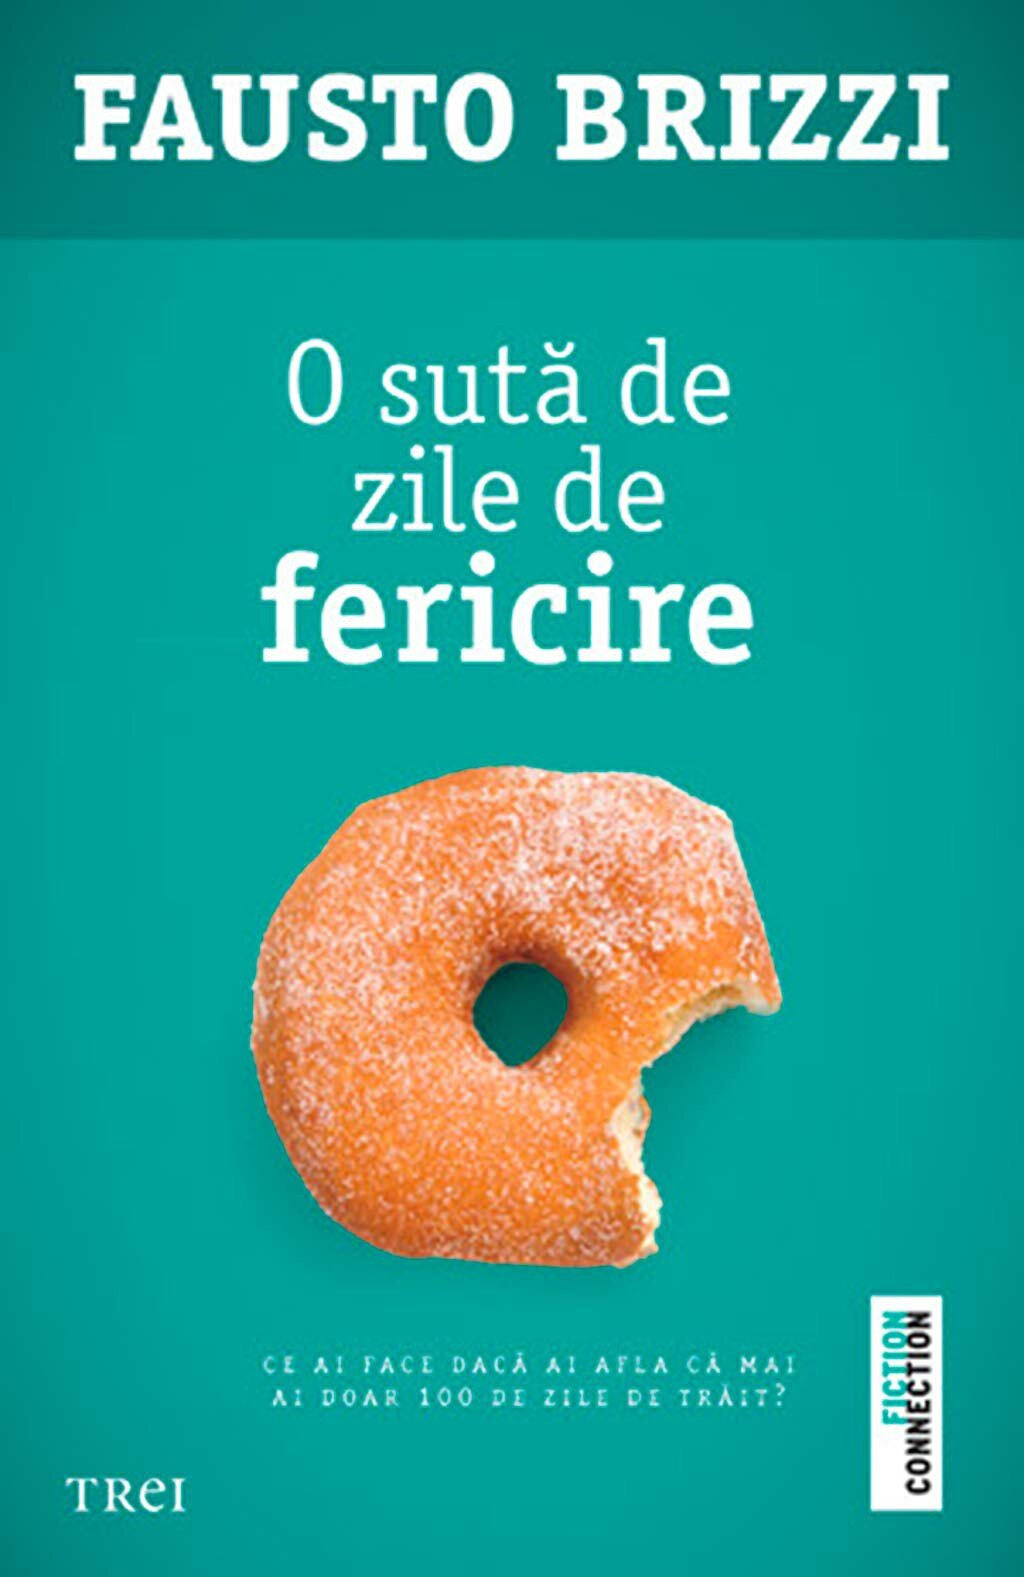 O suta de zile de fericire PDF (Download eBook)